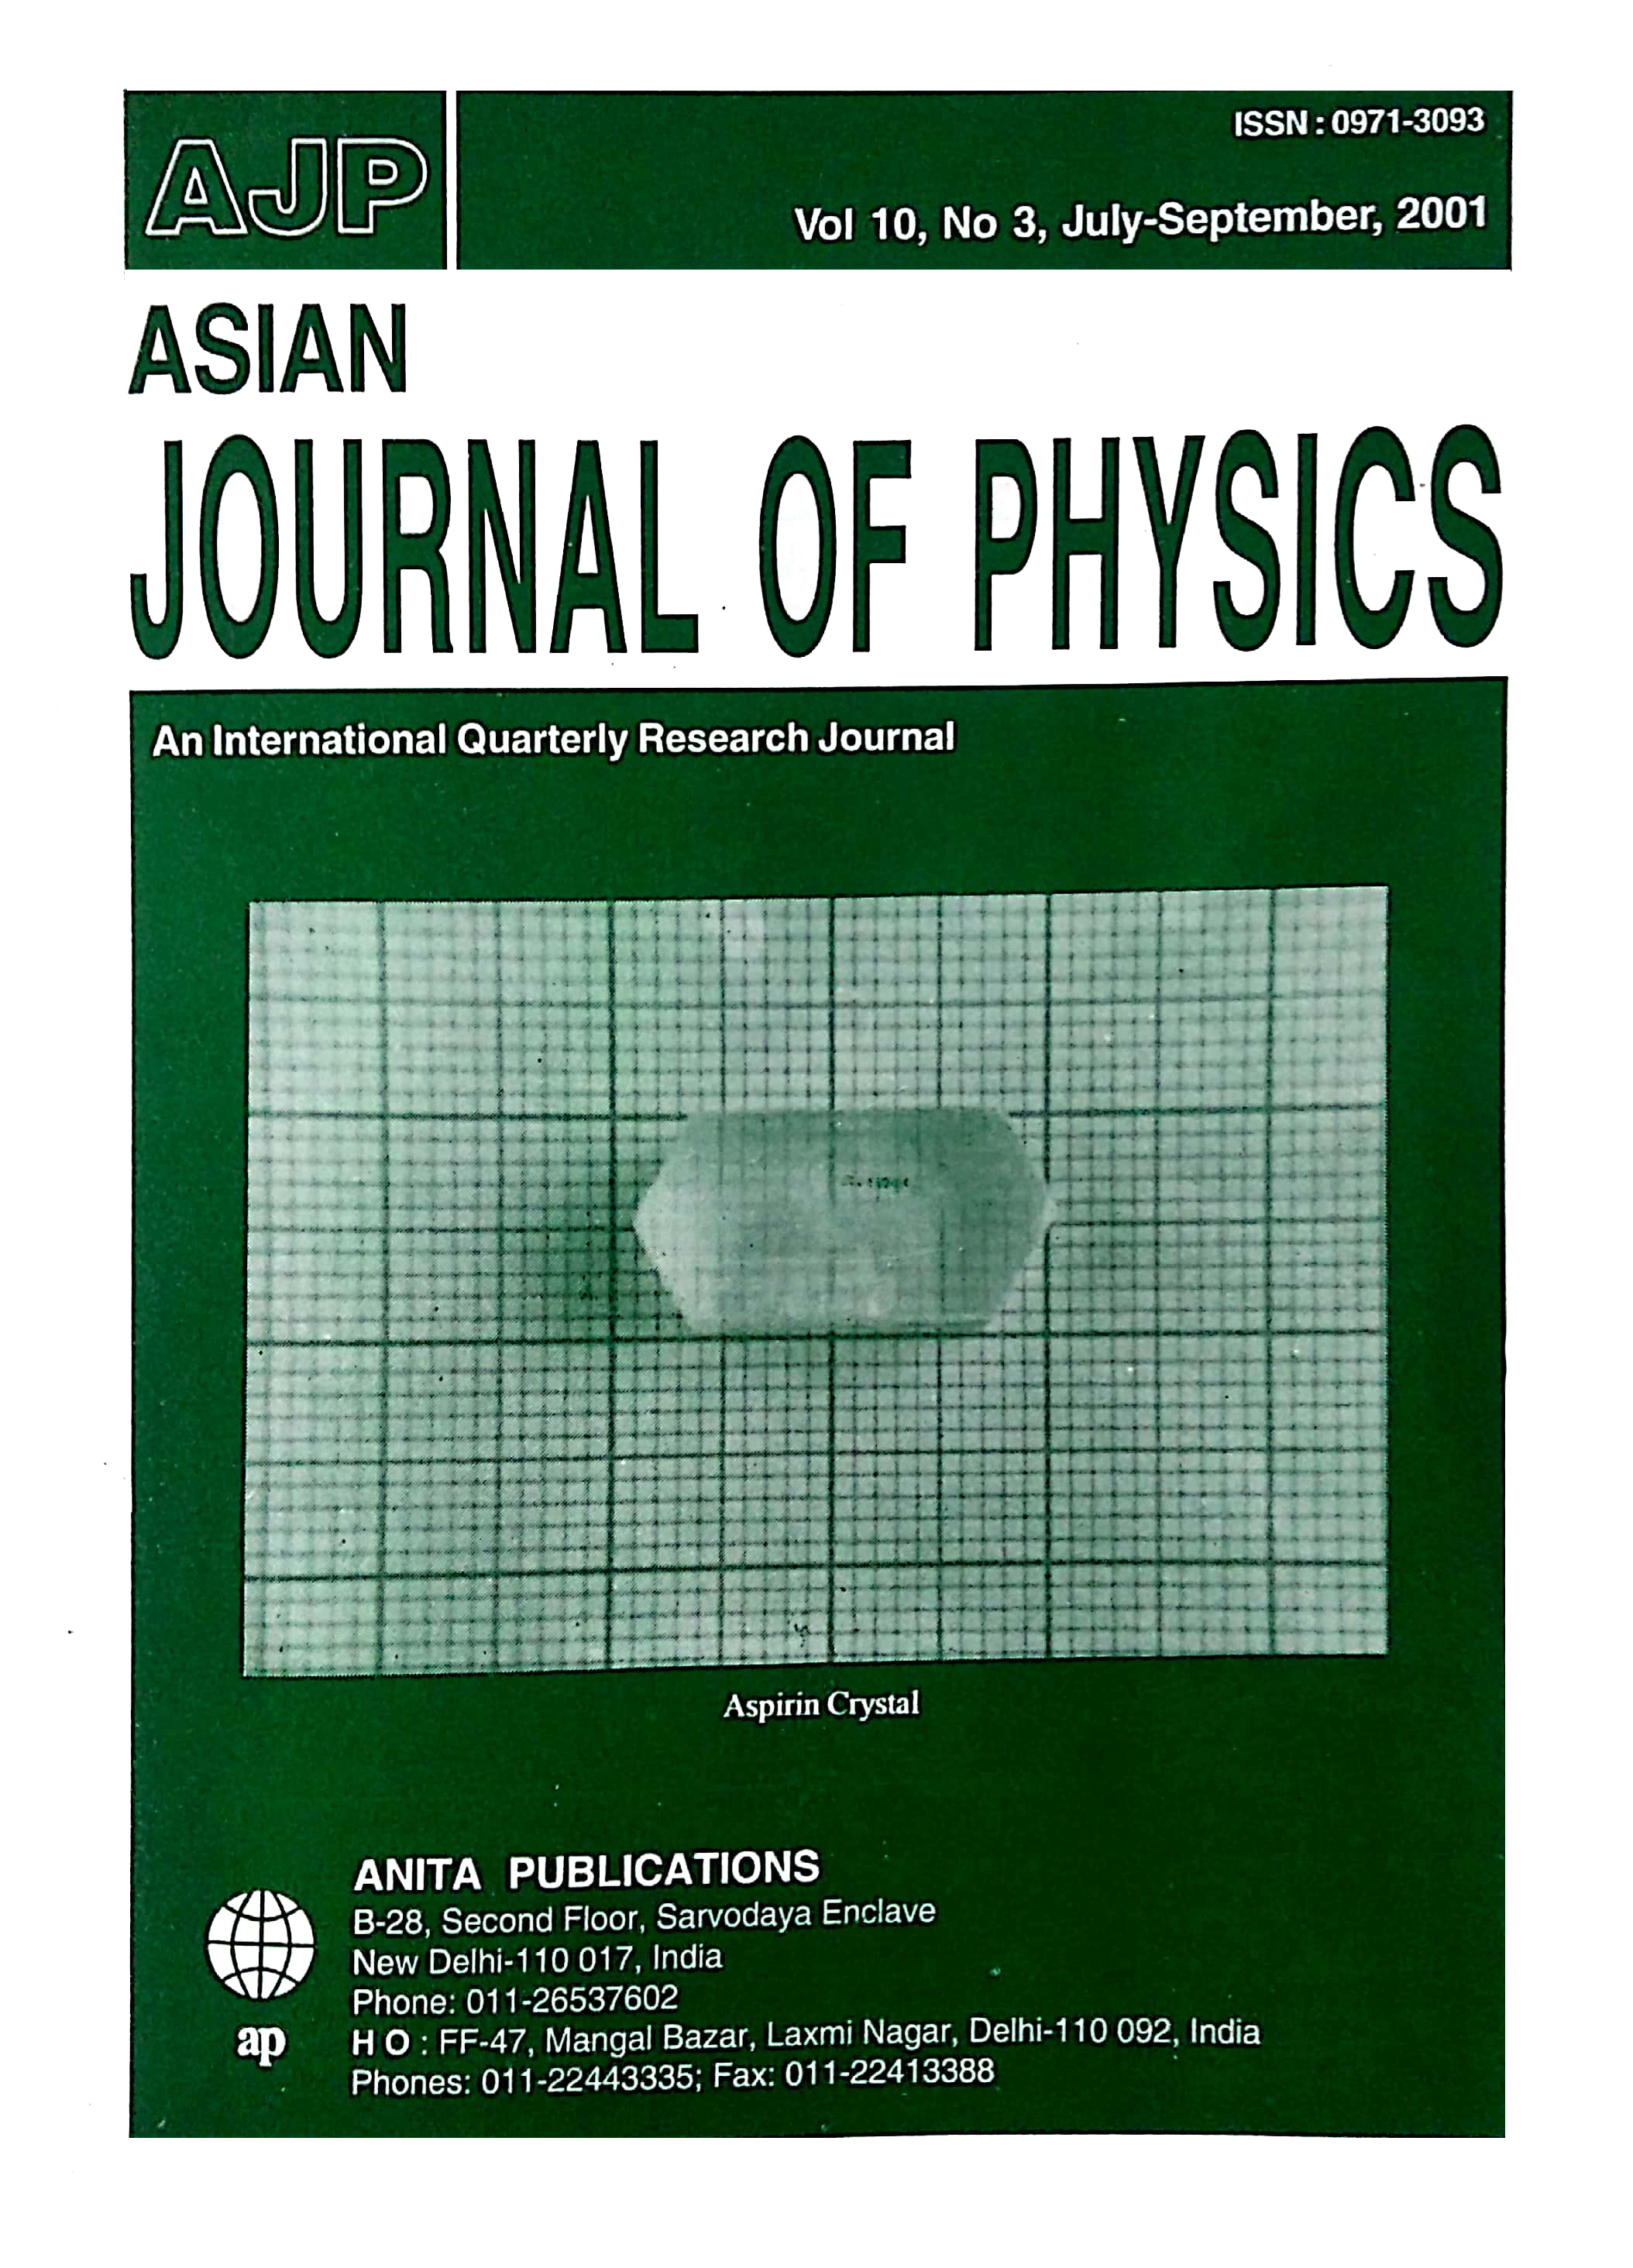 AJP Vol 10 No 3 2001